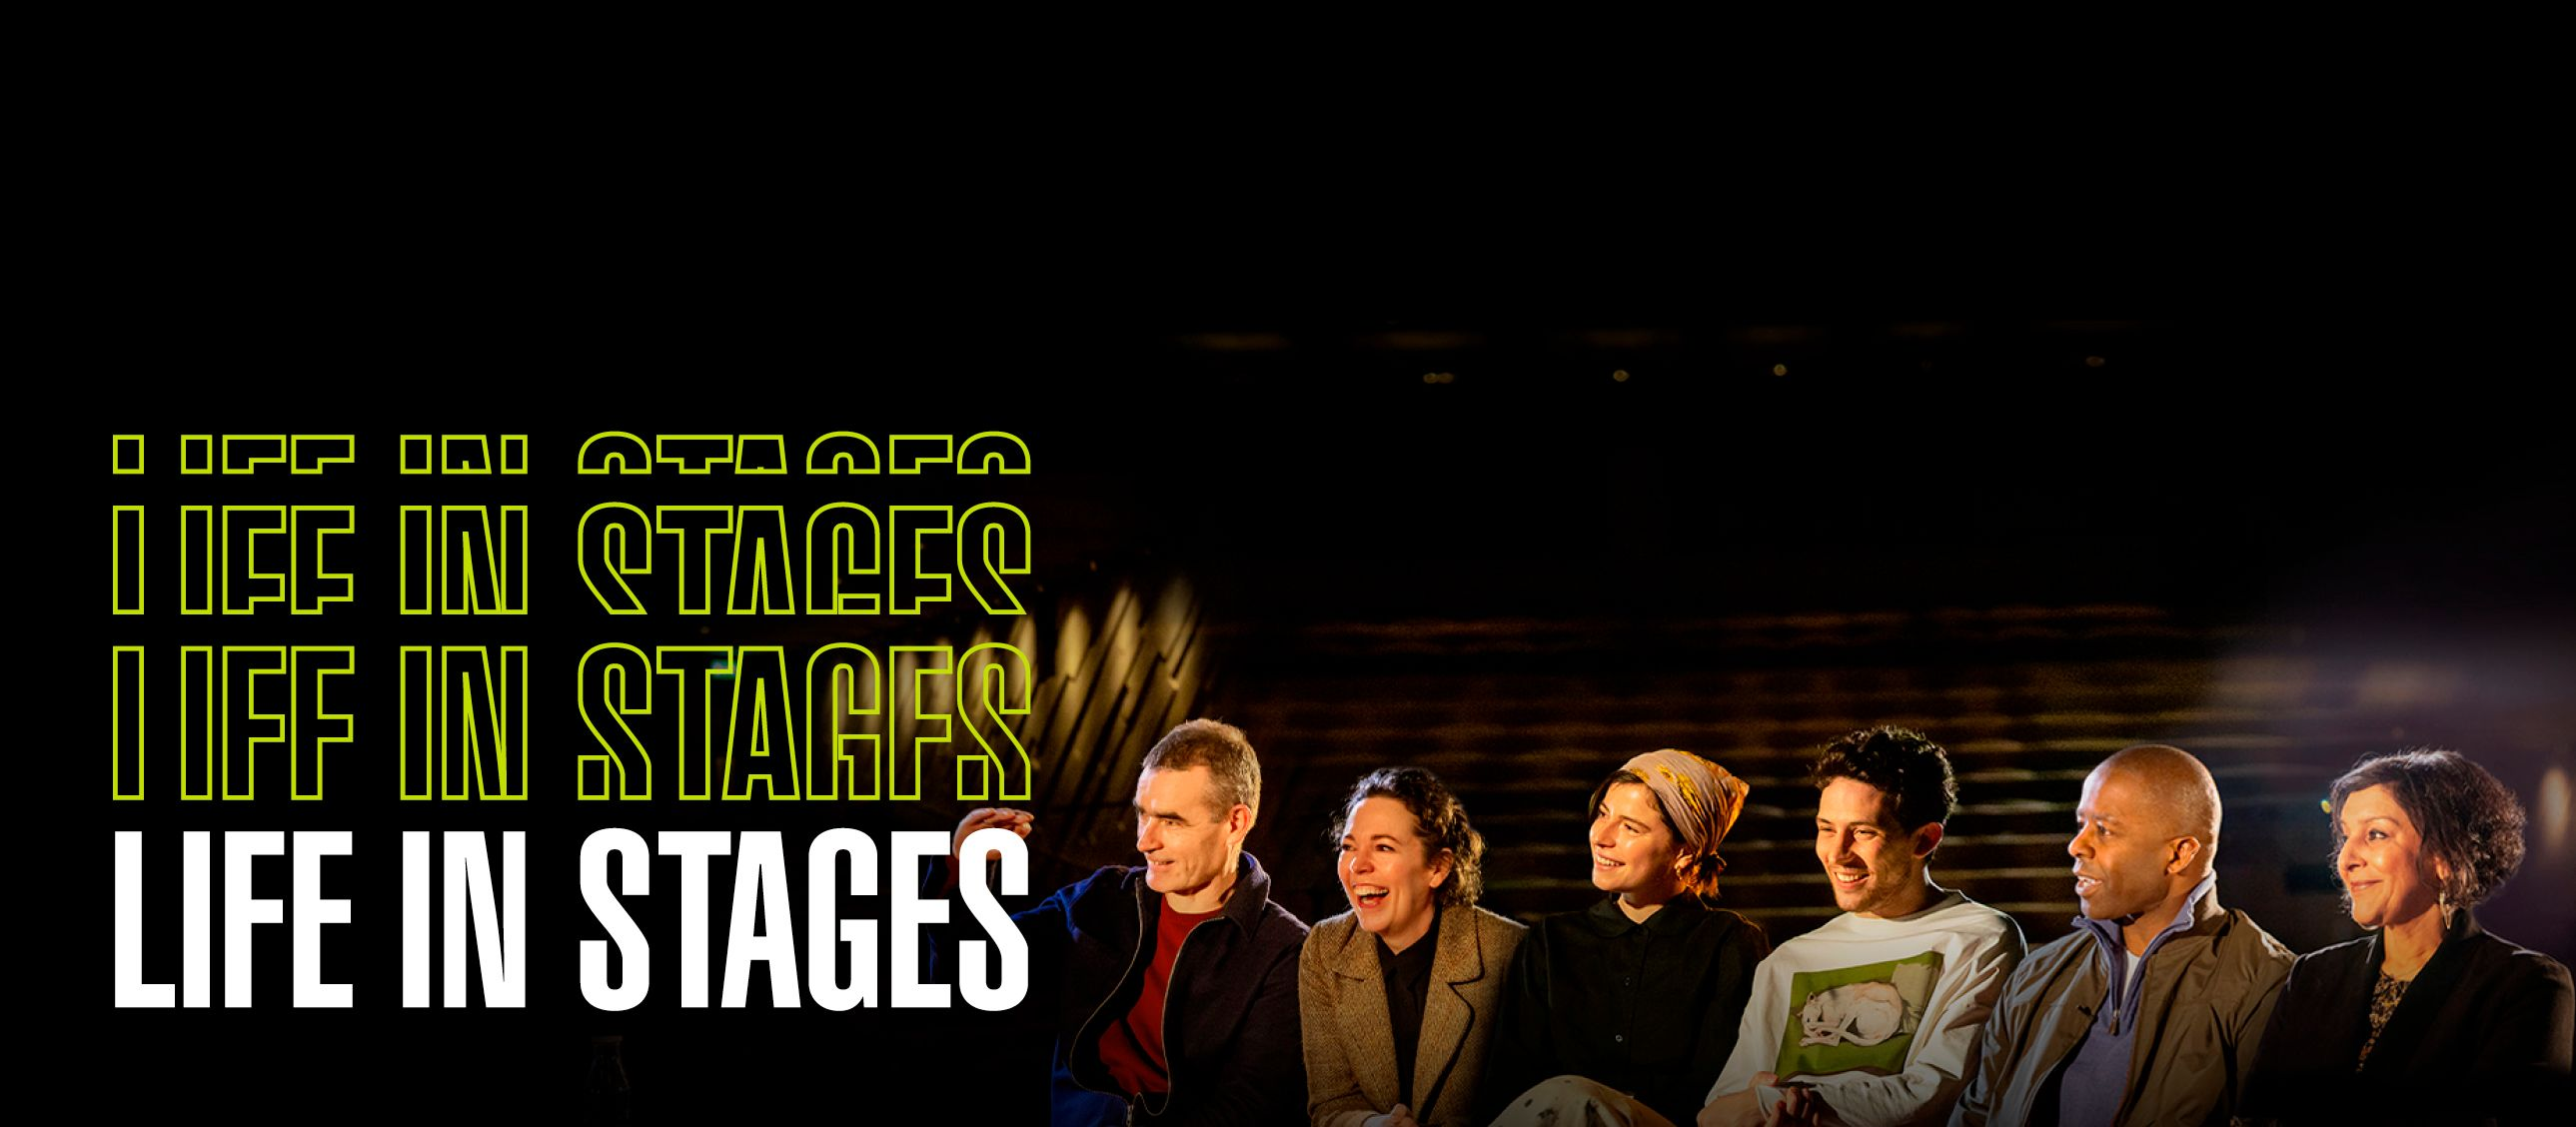 Life in Stages first three interviews with Olivia Colman and Rufus Norris, Jessie Buckley and Josh O'Connor, and Adrian Lester and Meera Syal